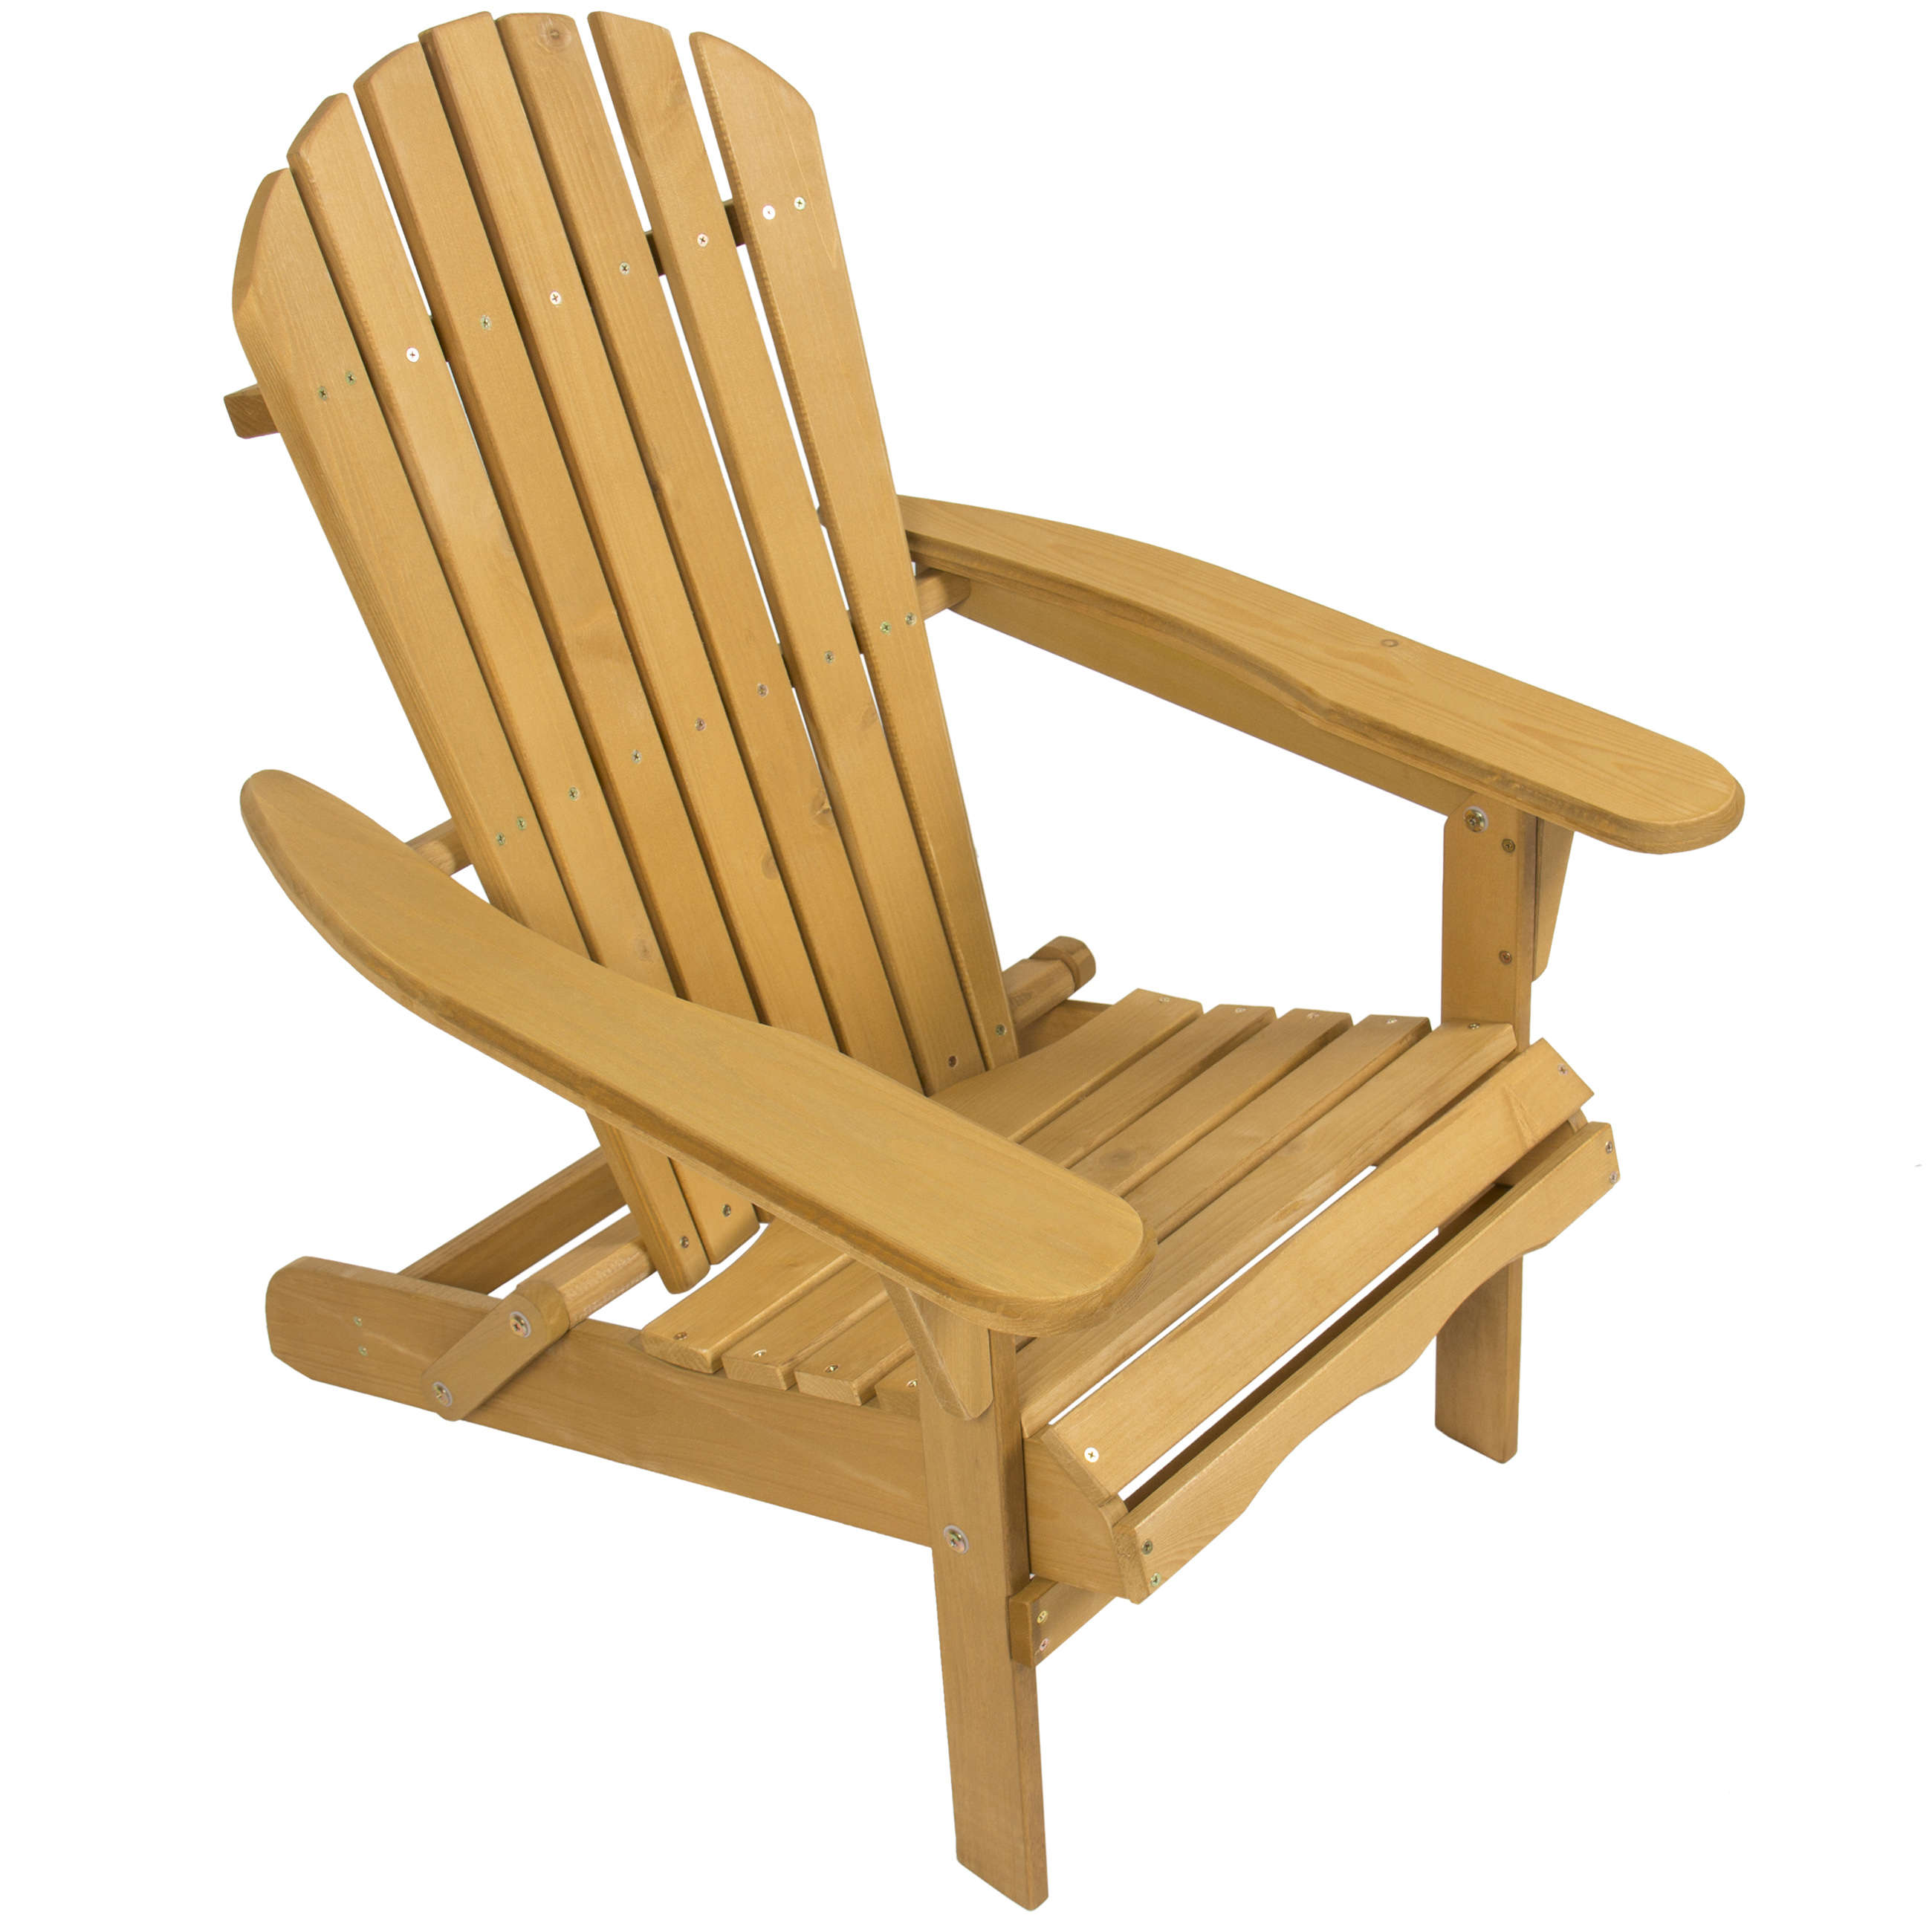 Garden Furniture Chairs best choice products outdoor wood adirondack chair foldable patio